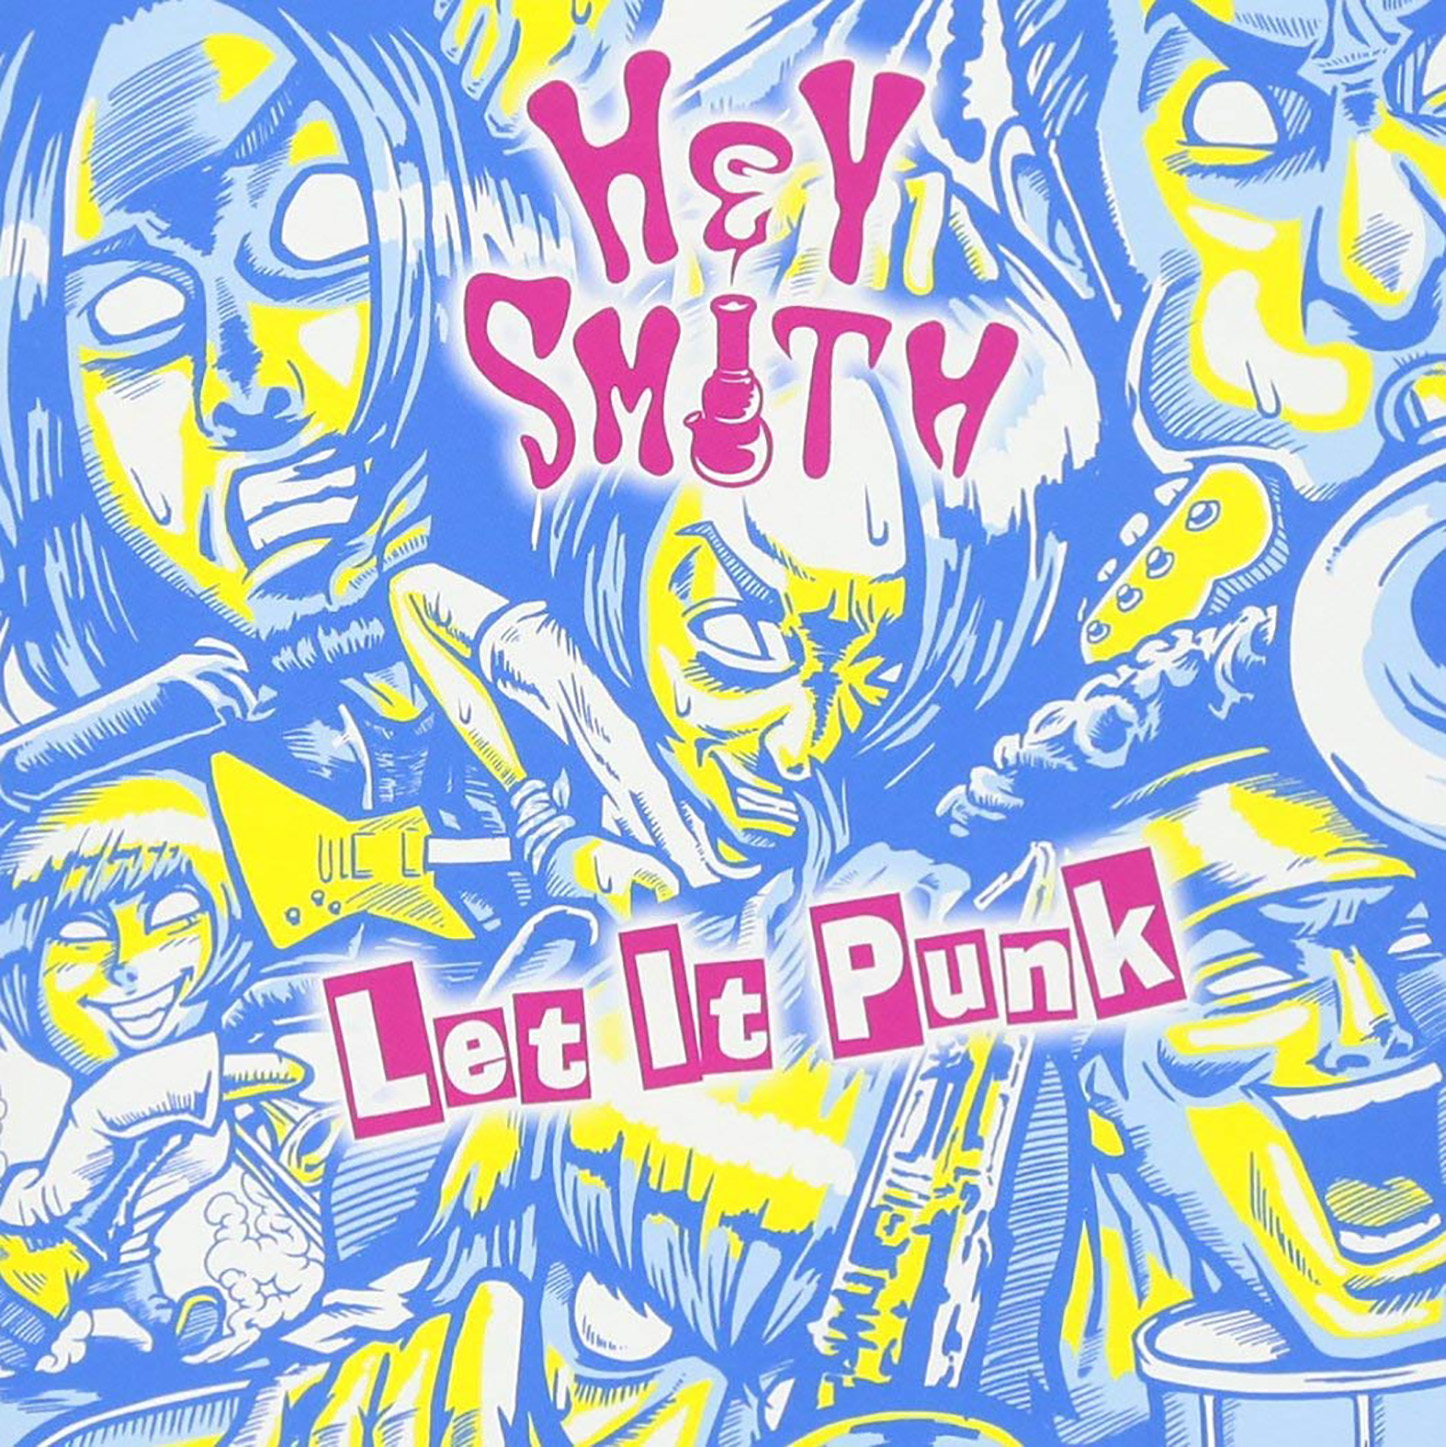 「Let It Punk」収録アルバム『Let It Punk』/HEY-SMITH